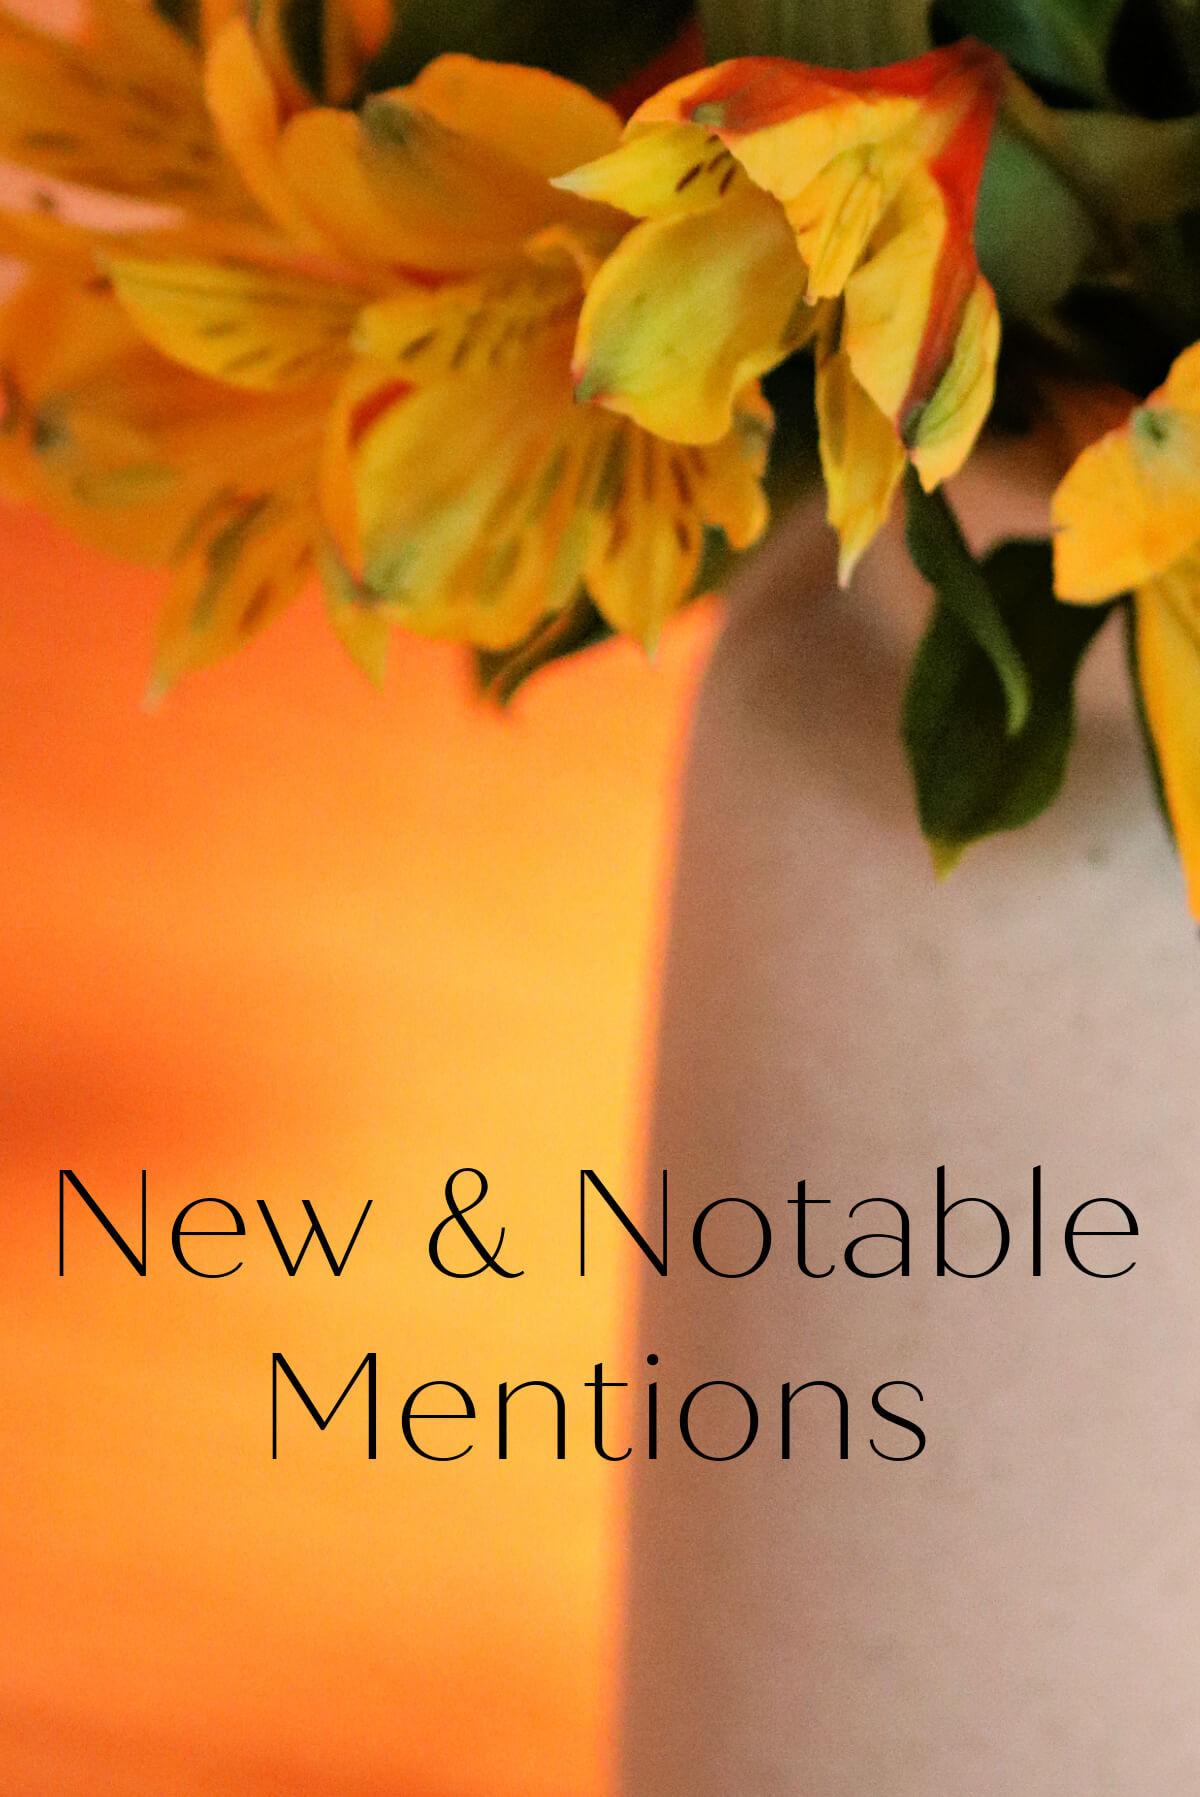 New & Notable Mentions #2